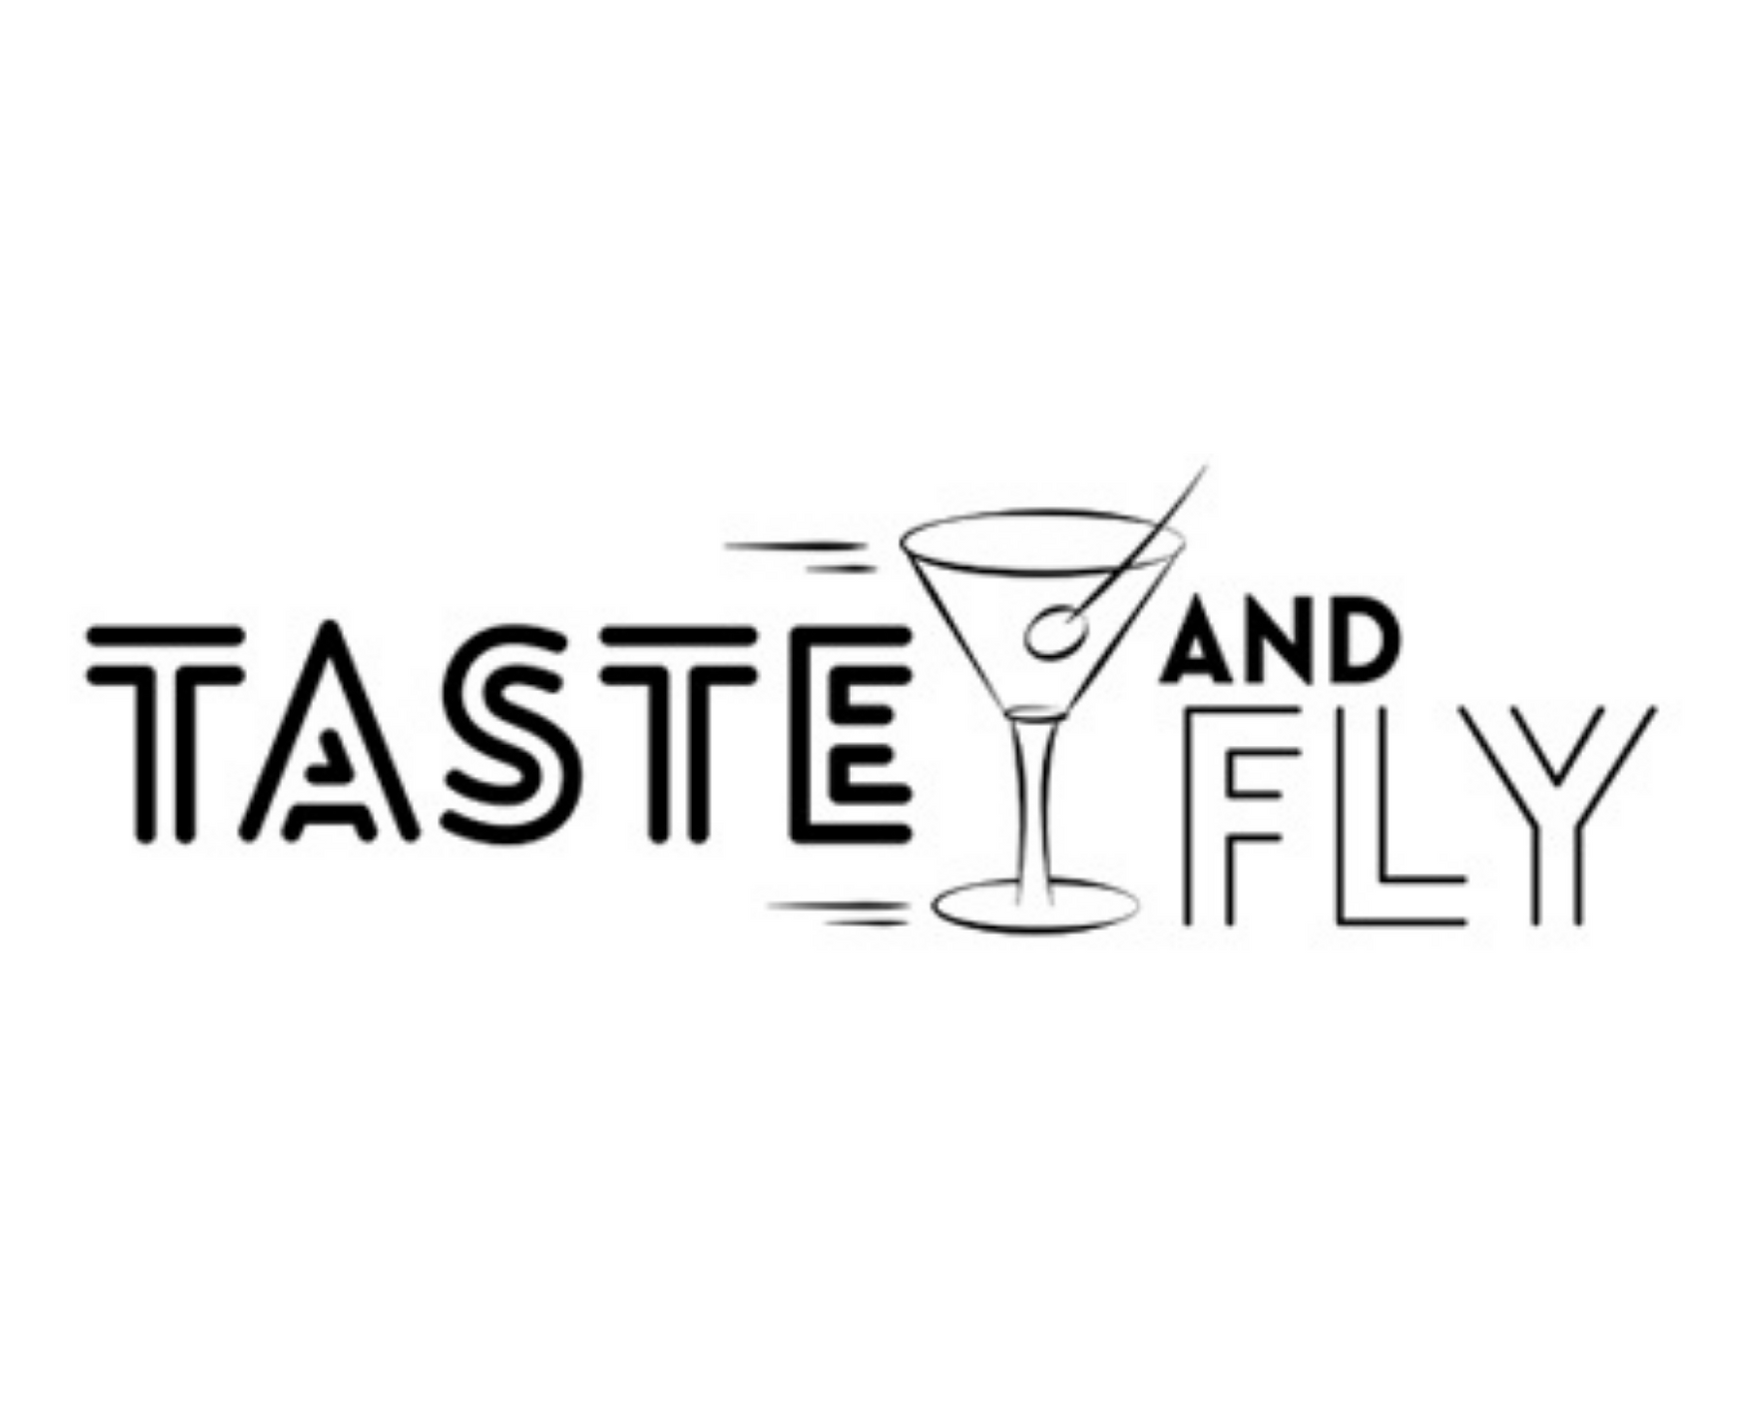 Taste and Fly